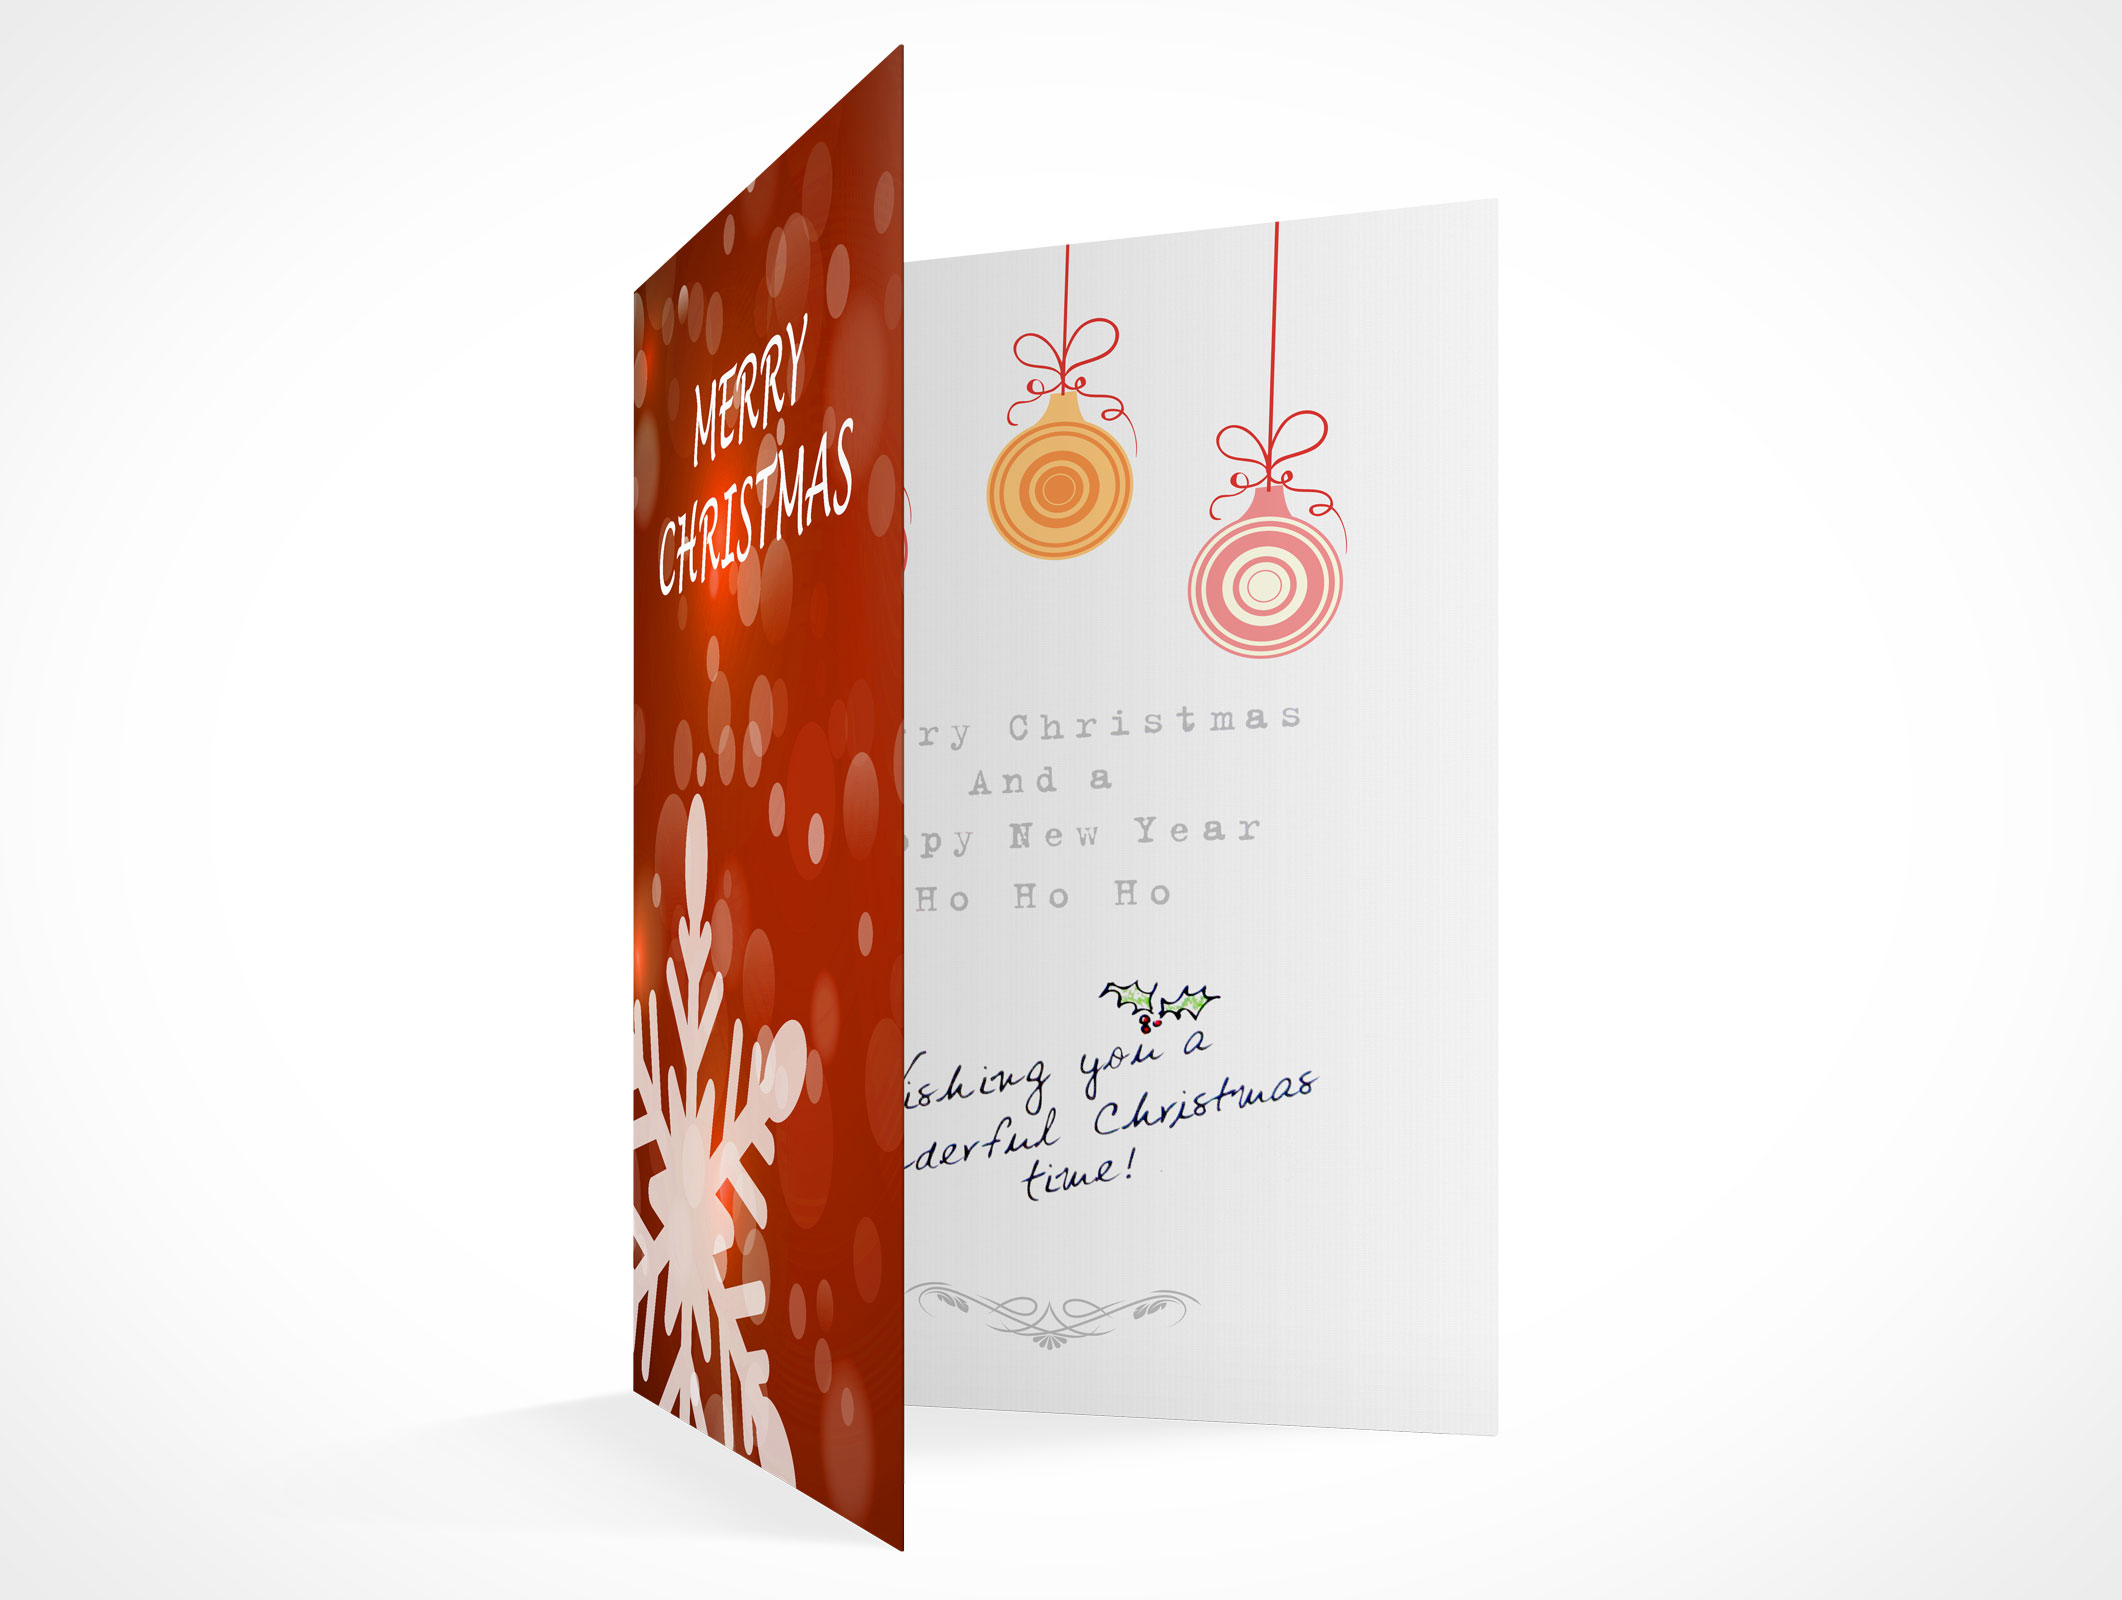 Blank holiday christmas greeting card mockups psd mockups blank holiday christmas greeting card template mockups kristyandbryce Image collections